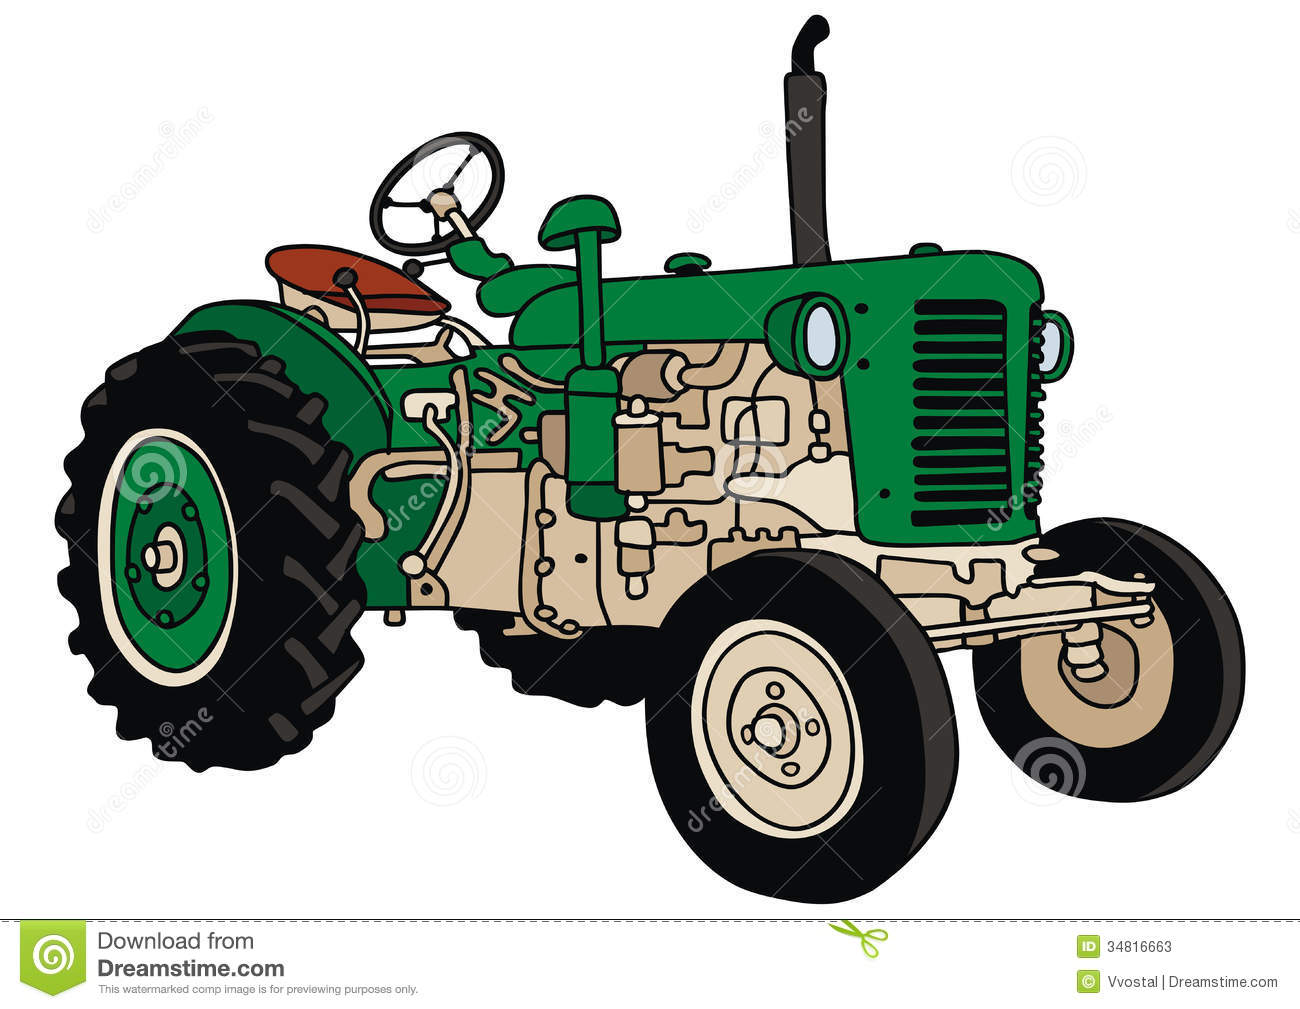 Tractor Stock Photos - Image: 34816663